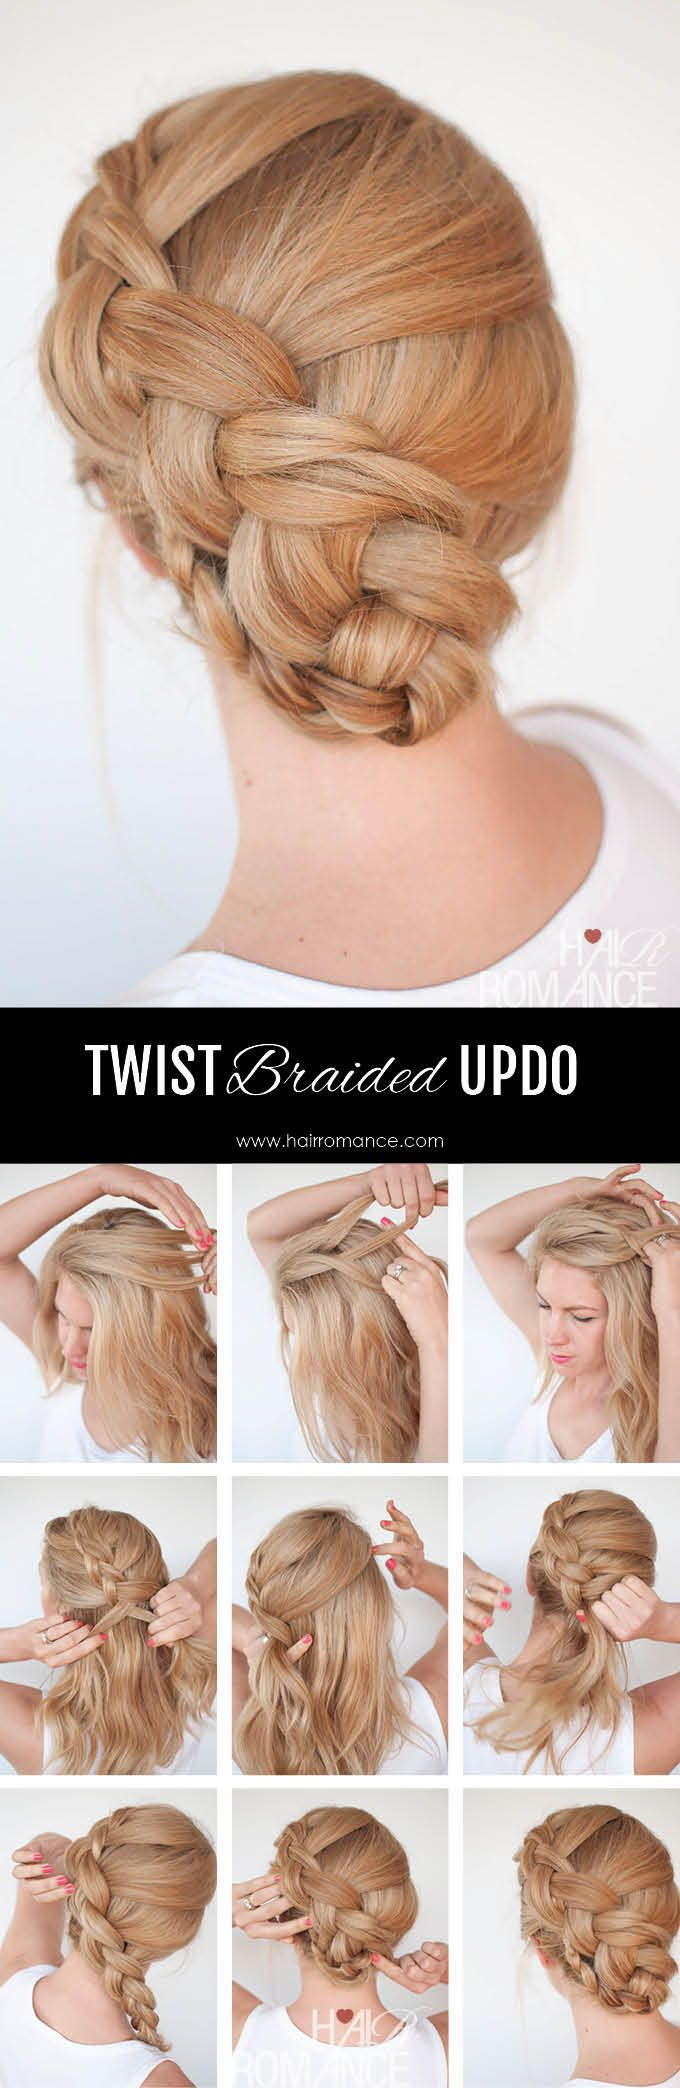 Hair Romance - Twist braid hairstyle tutorial 5